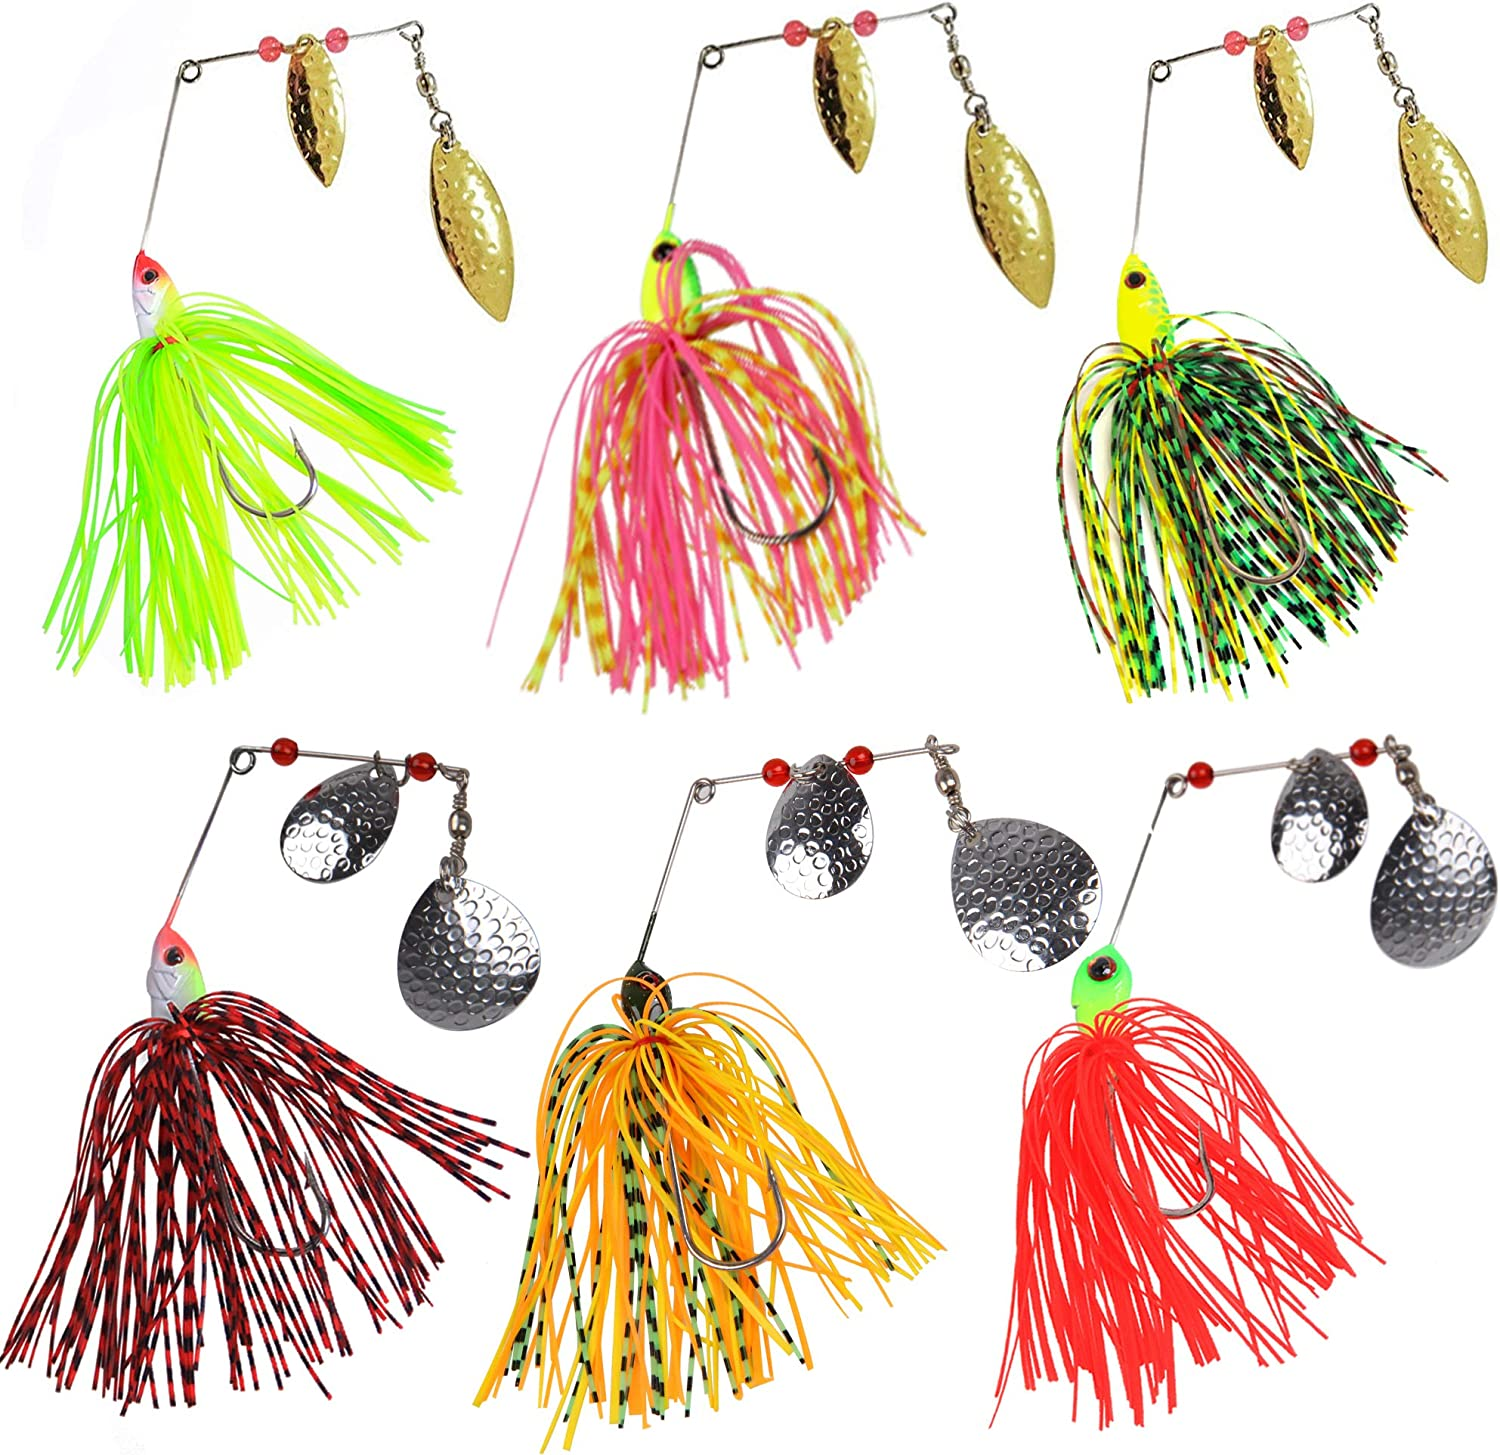 6pcs//12pcs Spinner Baits Rubber Jig Bass Fishing Lures Spoons Buzzbaits Tackles